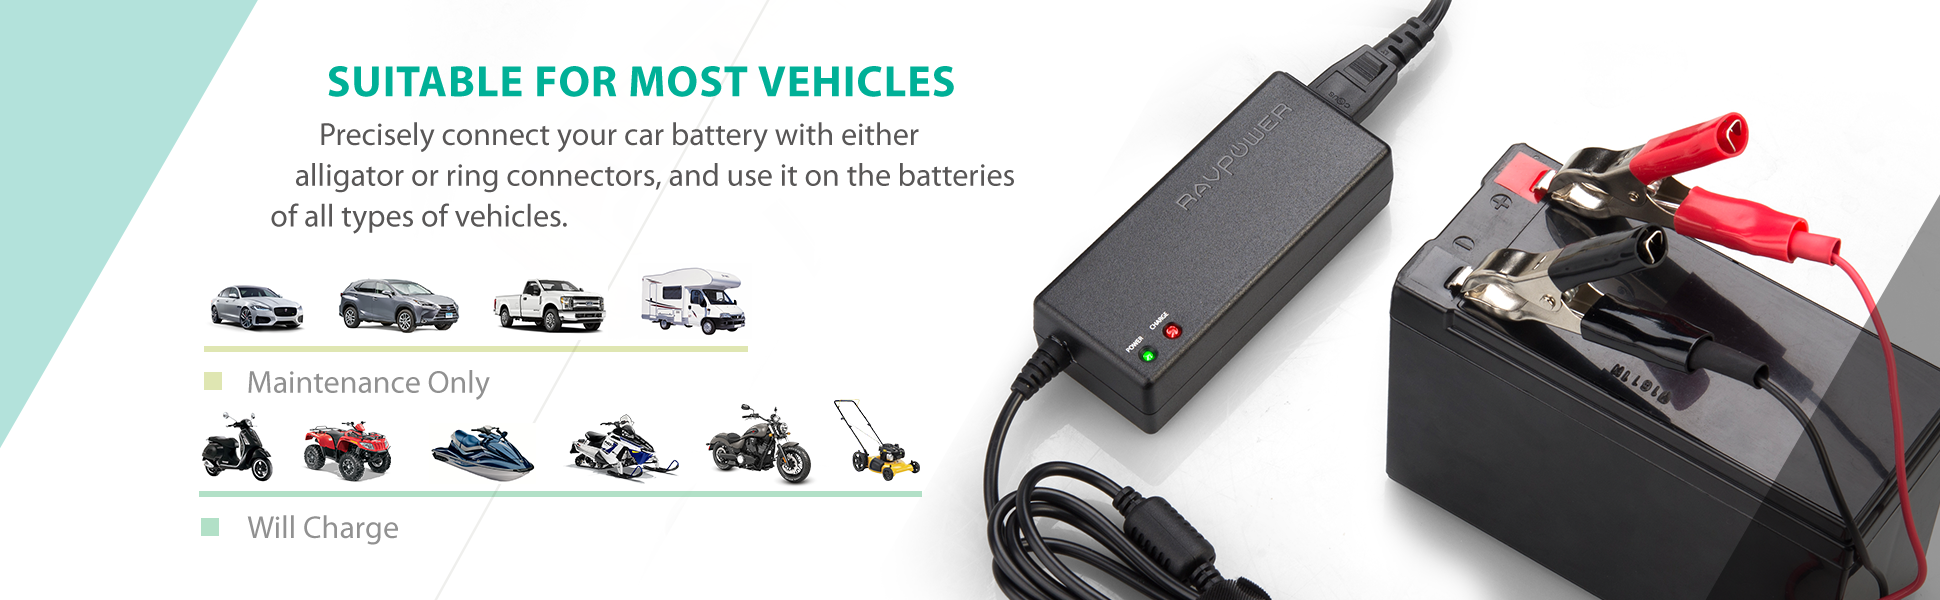 Amazon.com: Trickle Charger RAVPower Car Battery Charger